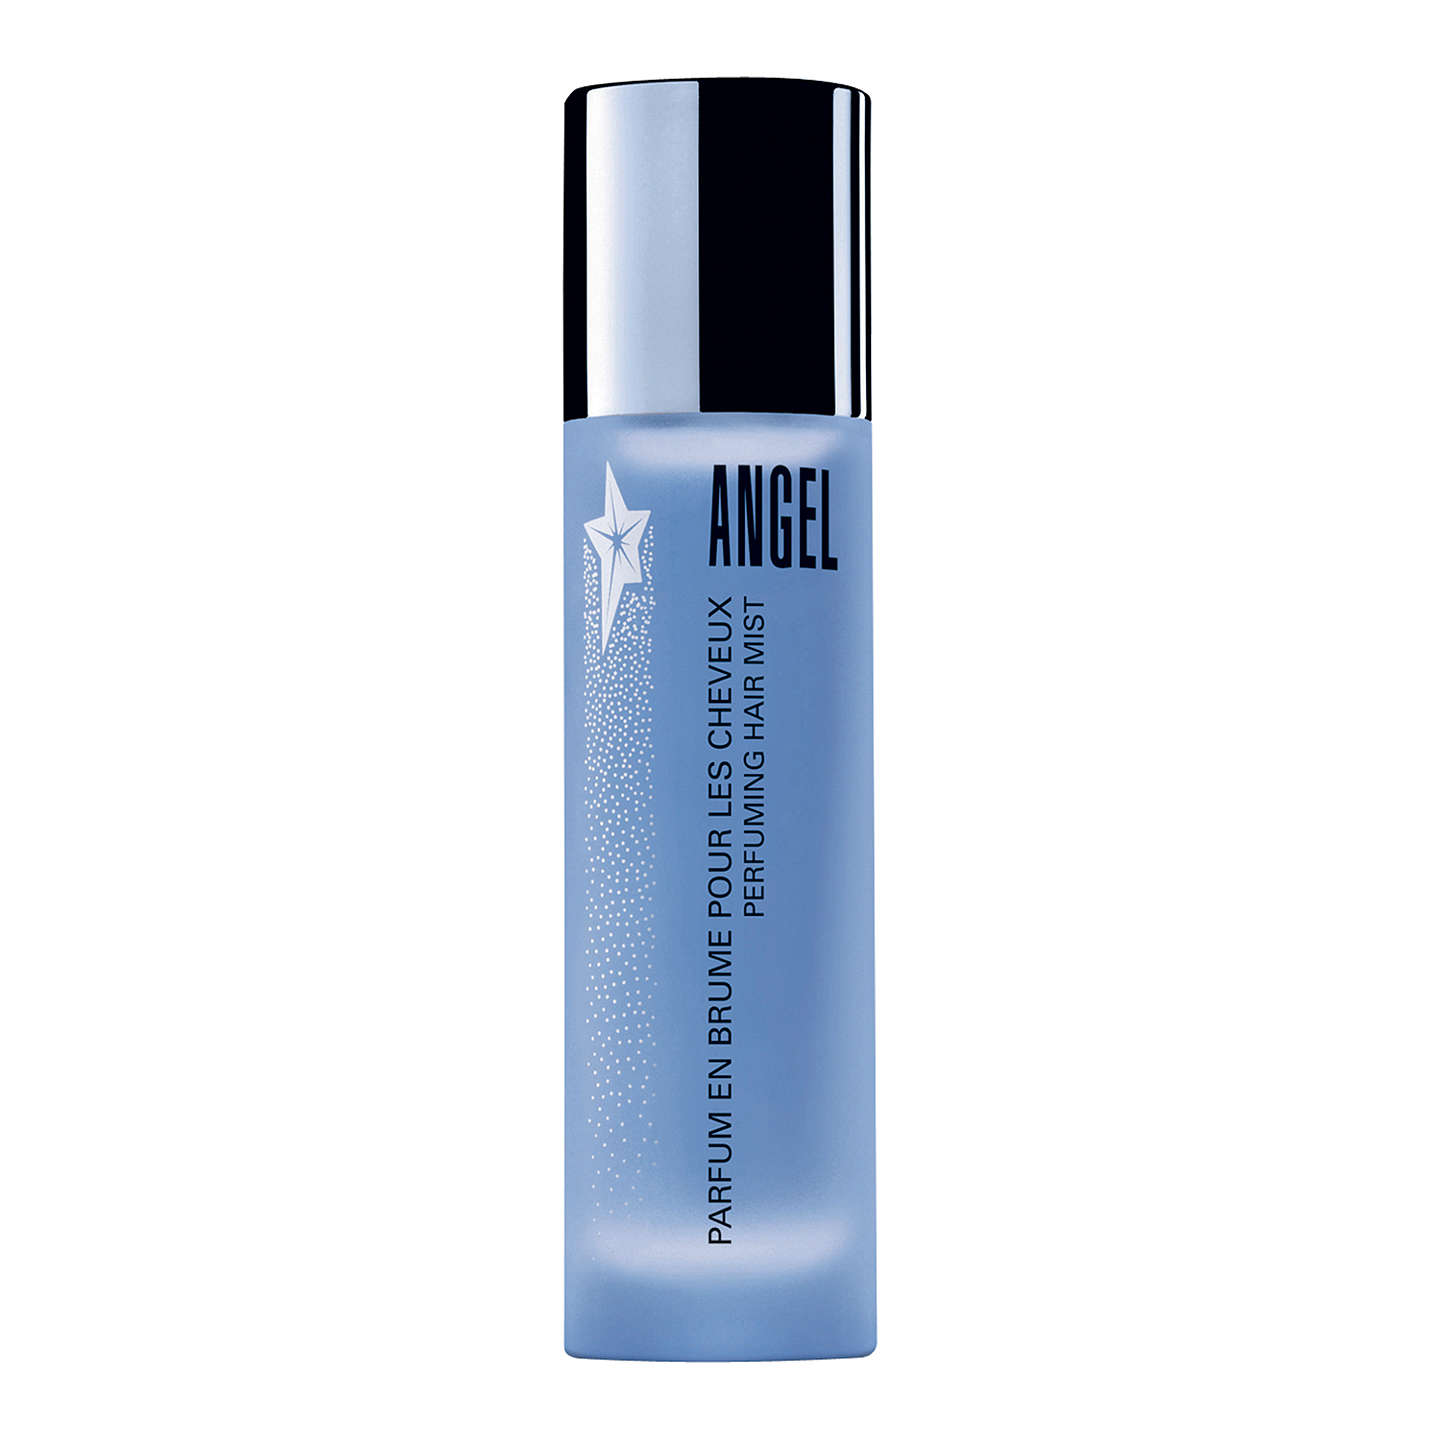 BuyMugler Angel Hair Mist, 30ml Online at johnlewis.com